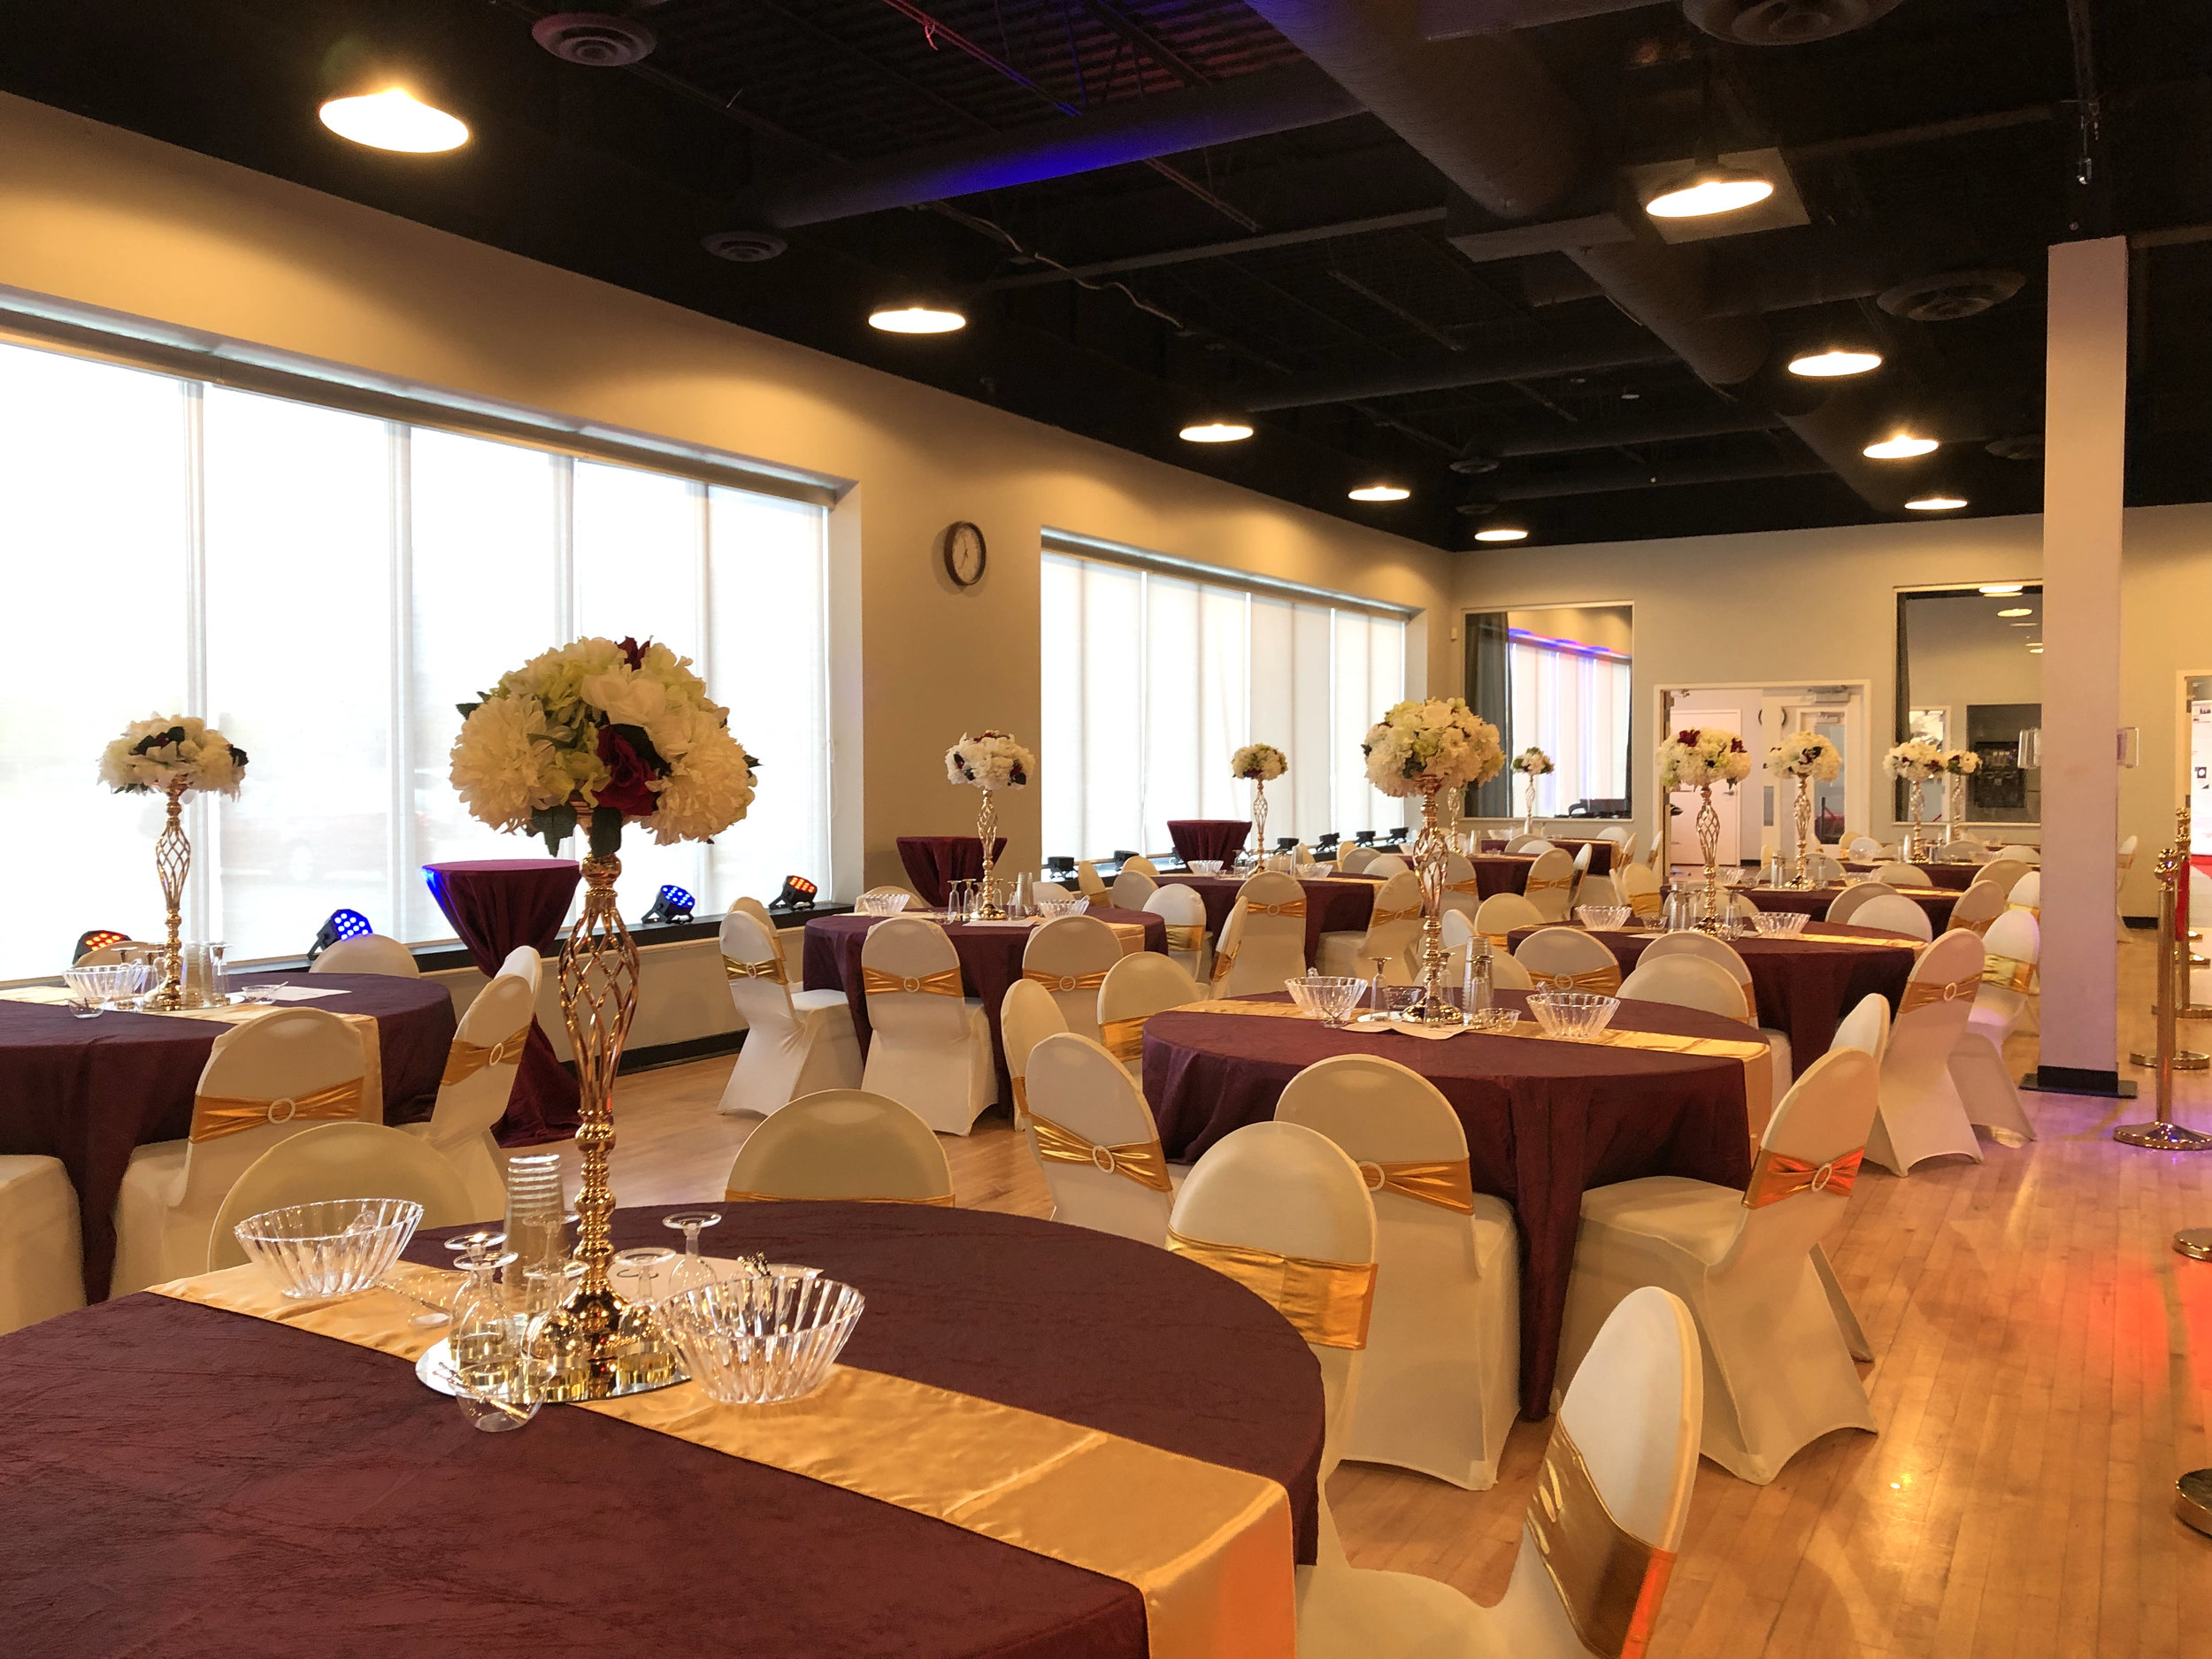 Midpointe Event Center Wedding Reception Burgundy and Gold Setup.jpg